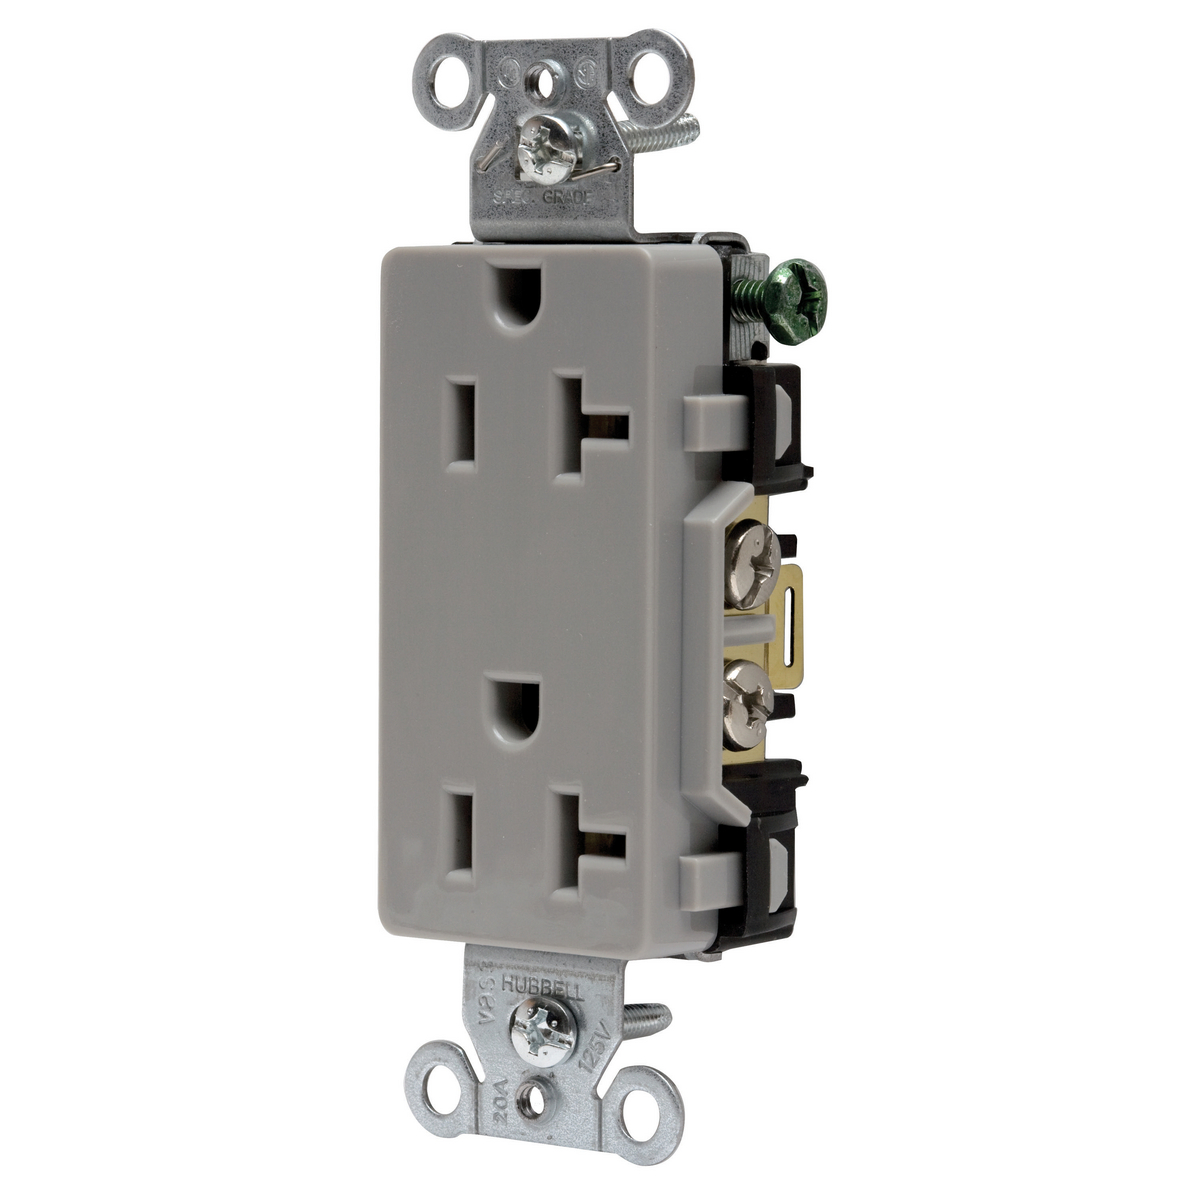 DECO RCPT, COMM GRD, 20A 125V, 5-20R, GY